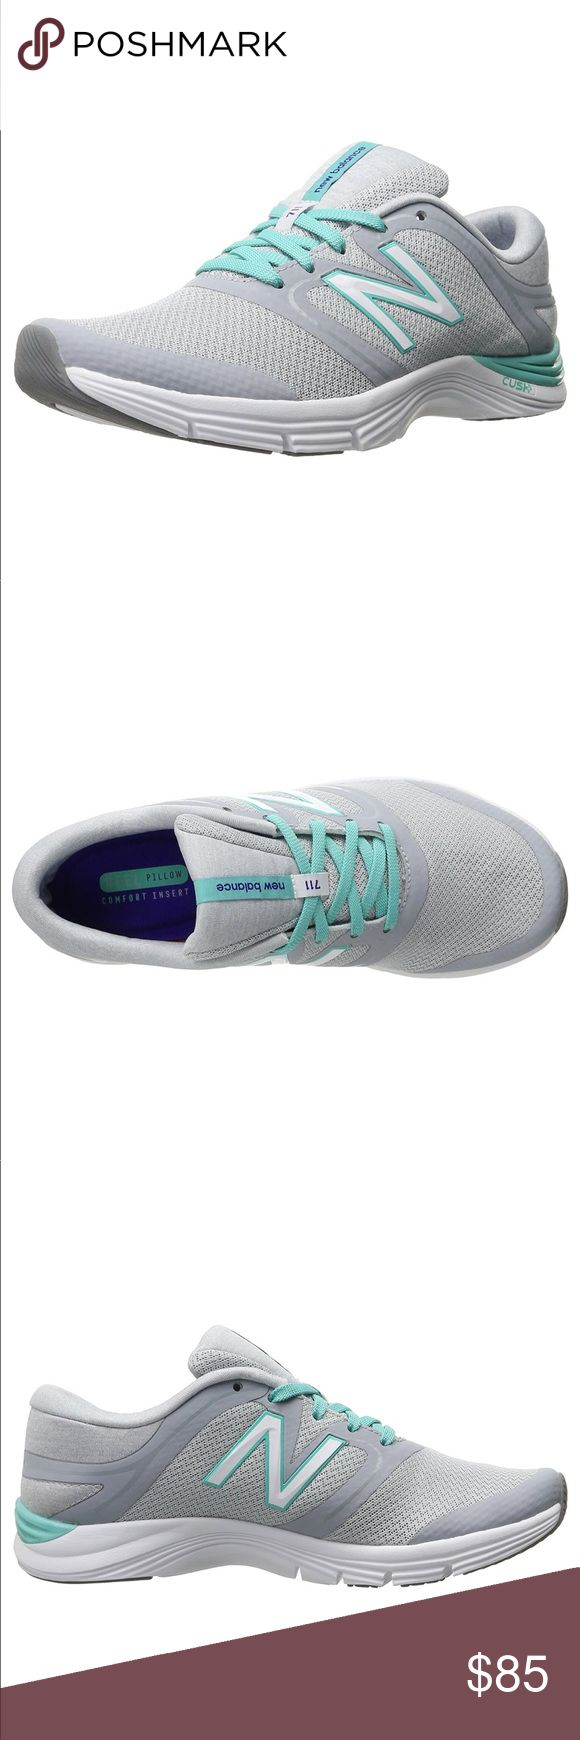 """New Balance Women's 711v2 Training Shoes New Balance is dedicated to helping athletes achieve their goals. It's why they don't design products to fit an image. They design them to fit. New Balance is driven to make the finest shoes : Synthetic/Fabric Rubber sole Shaft measures approximately Low-Top"""" from arch Lace-up trainer featuring breathable mesh upper with TPU reinforcement and padded tongue/collar Removable comfort insert with heel pillow Cush+ technology Forefoot flex grooves 8 mm…"""